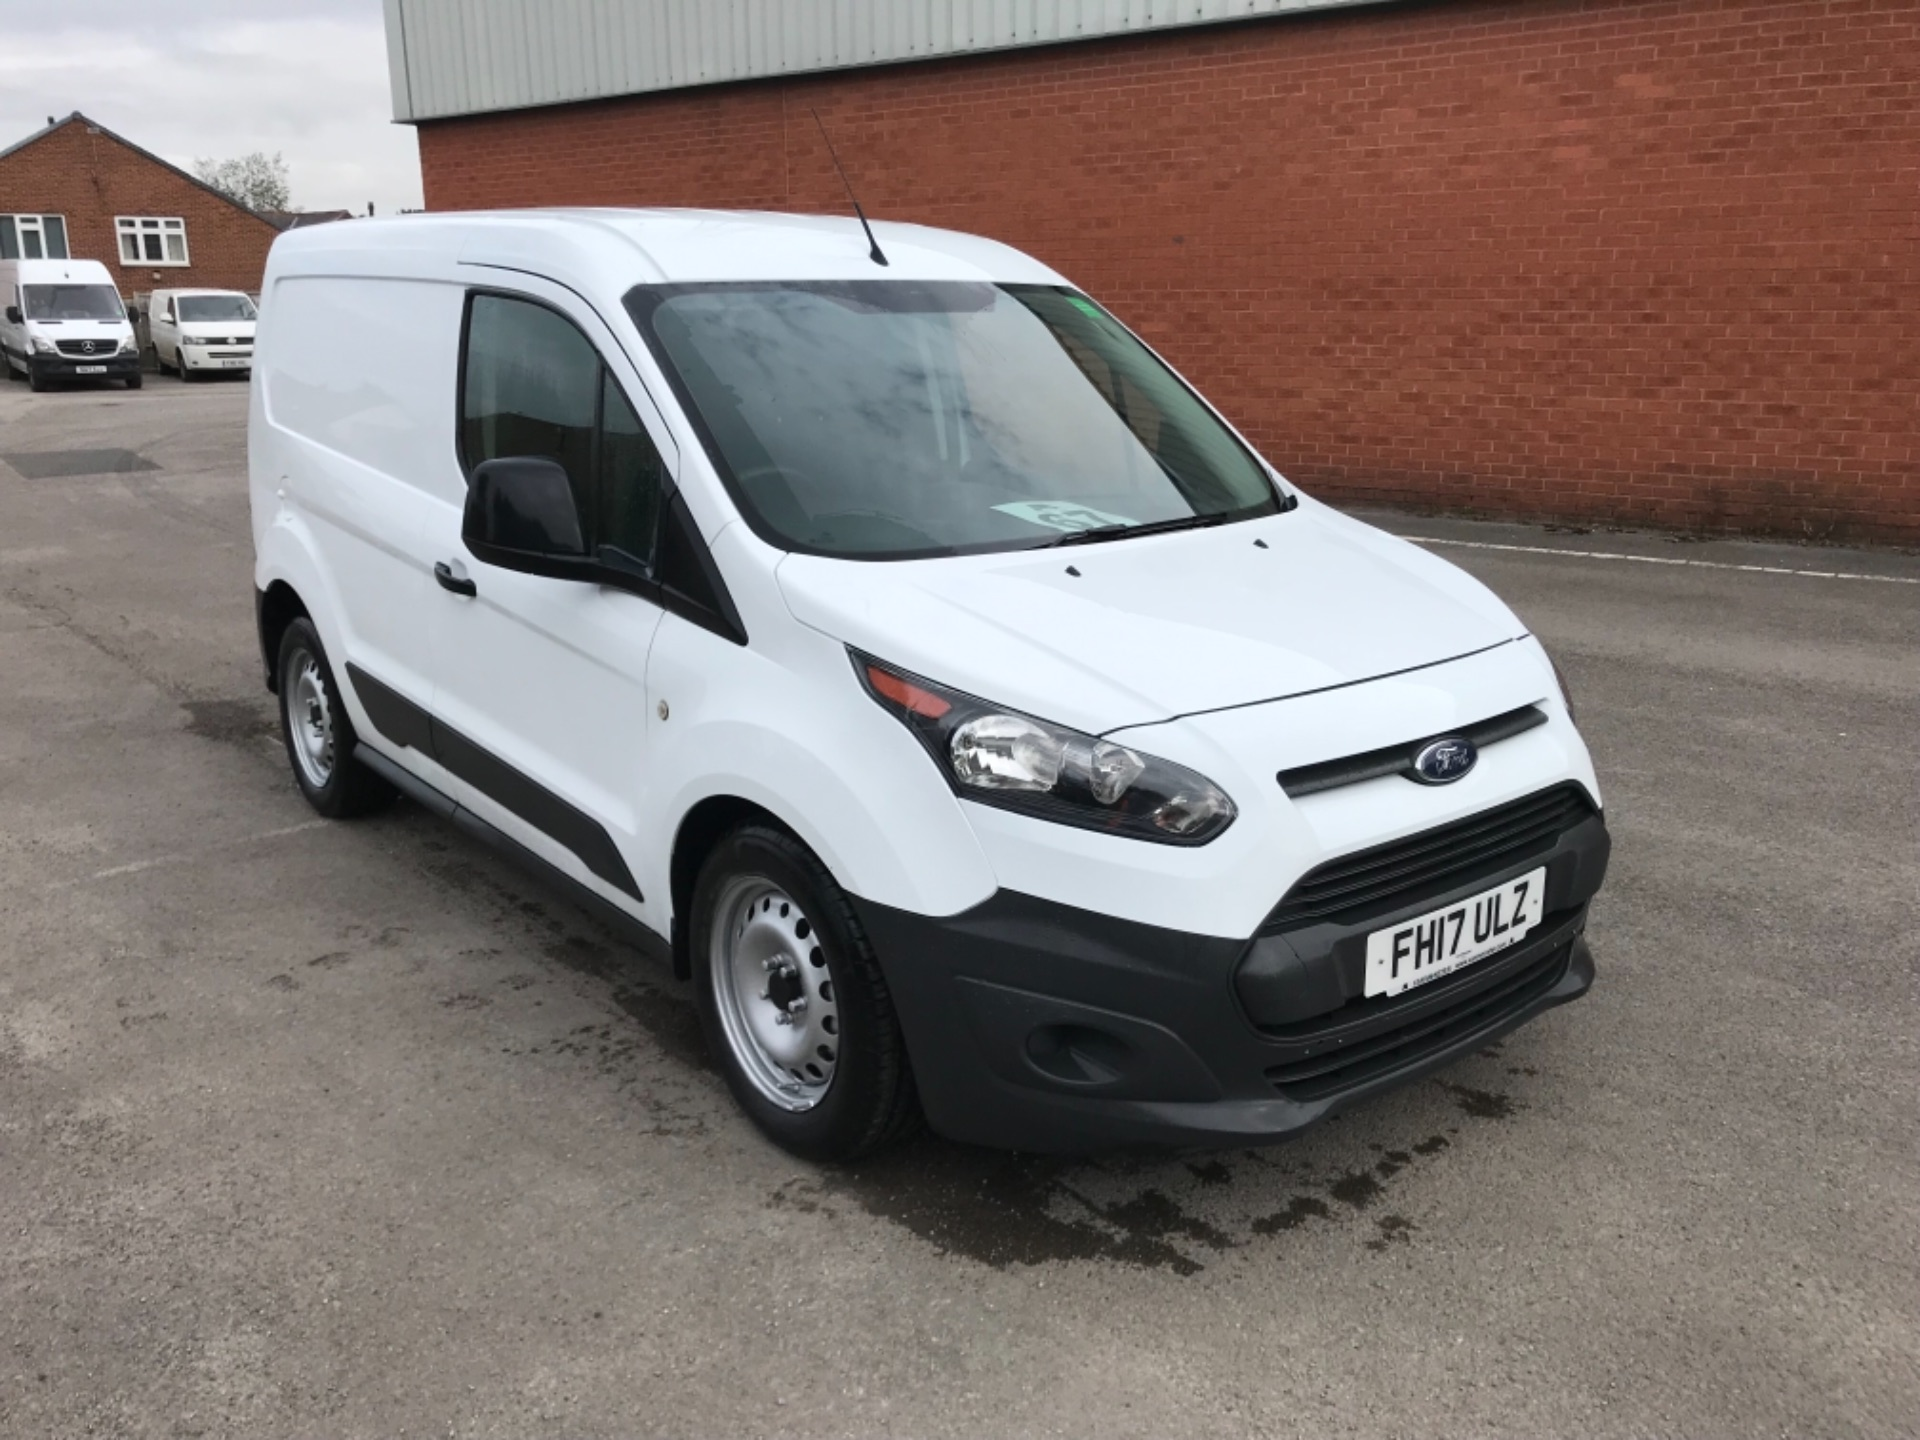 2017 Ford Transit Connect 1.5 Tdci 75Ps Van EURO 6 (FH17ULZ)